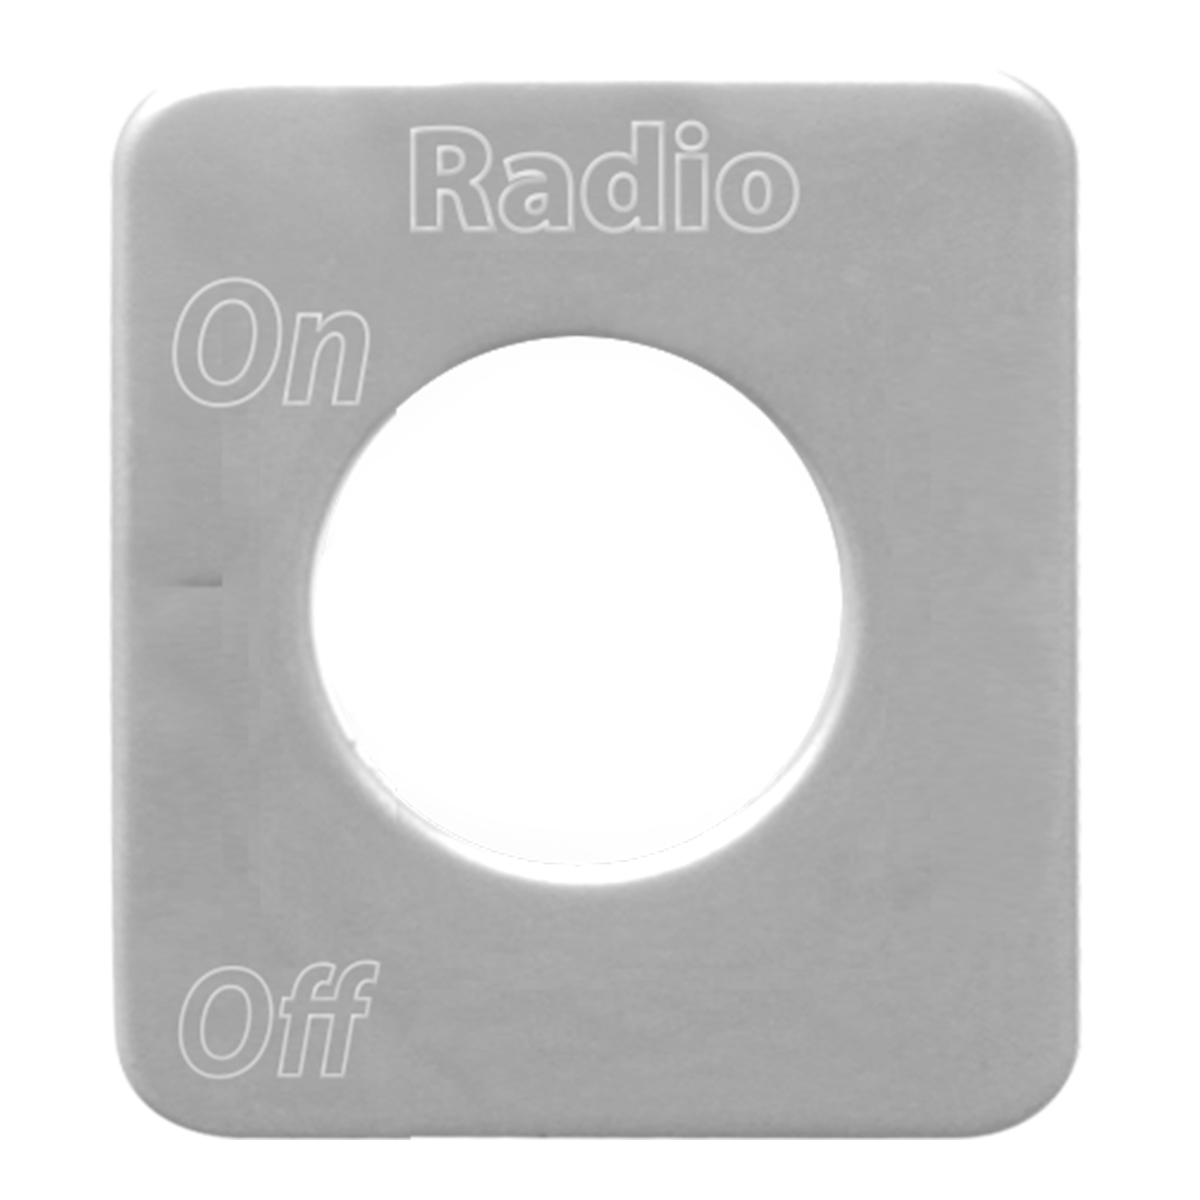 68590 Stainless Steel Radio Switch Plate for KW